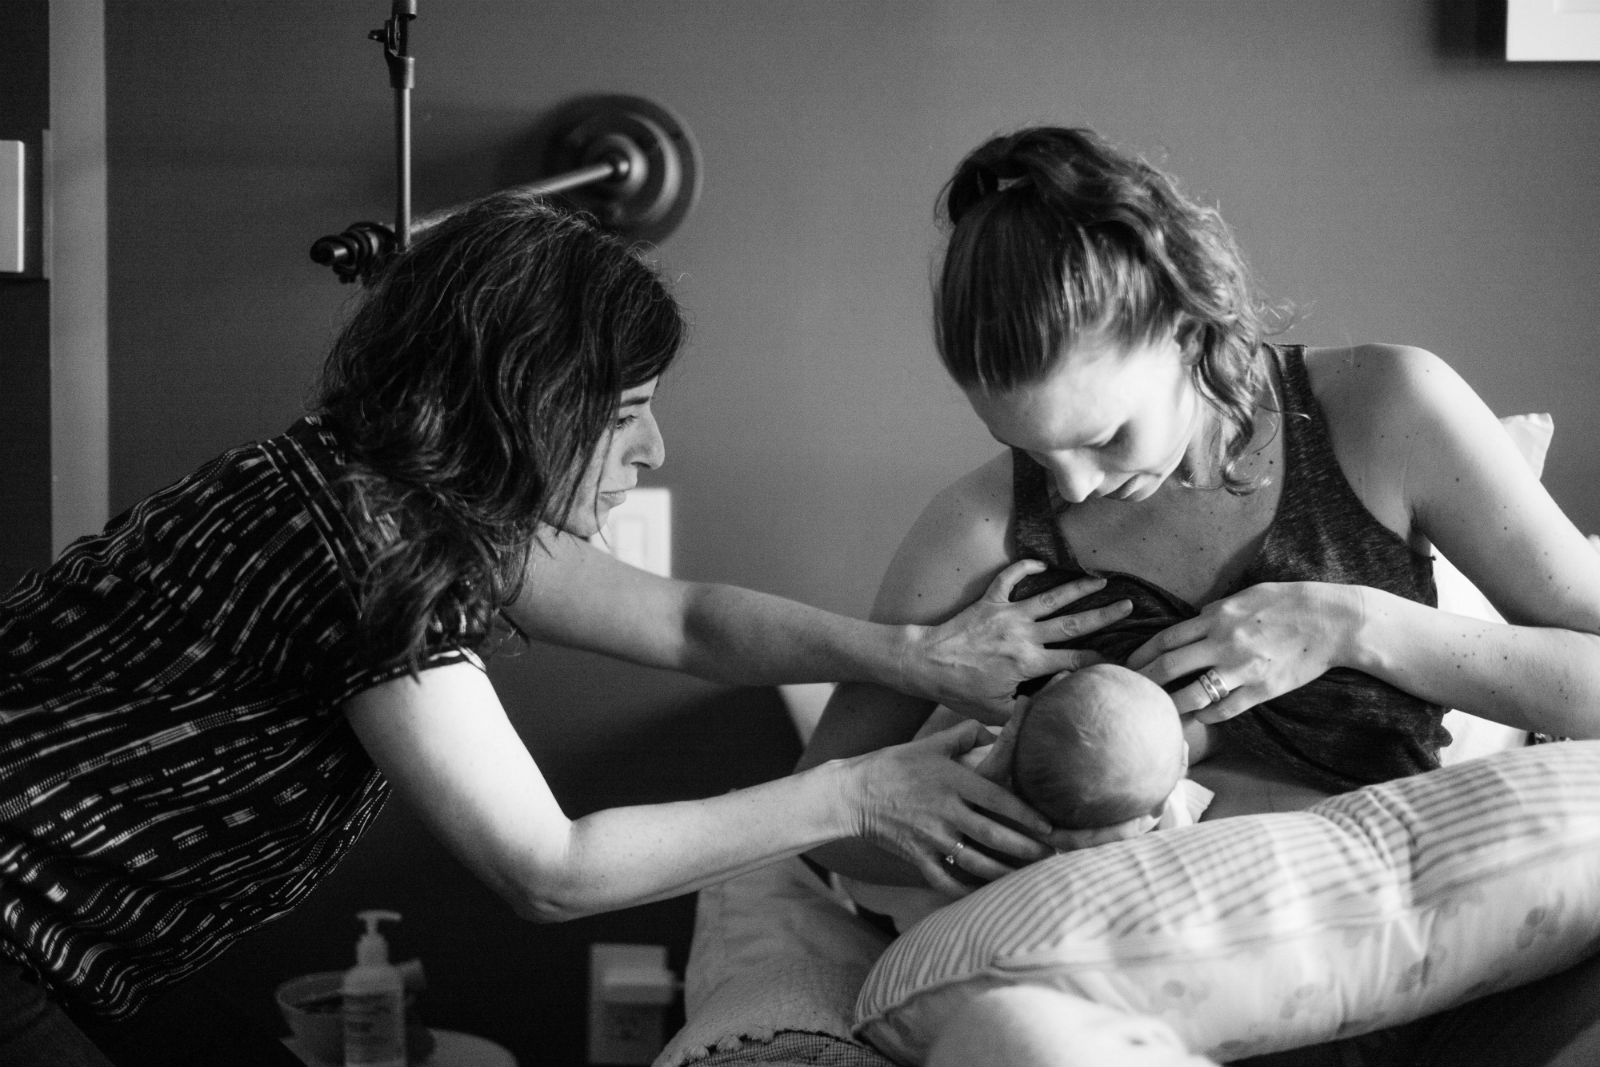 Nursing pro assisting a new mother and her newborn with breastfeeding.